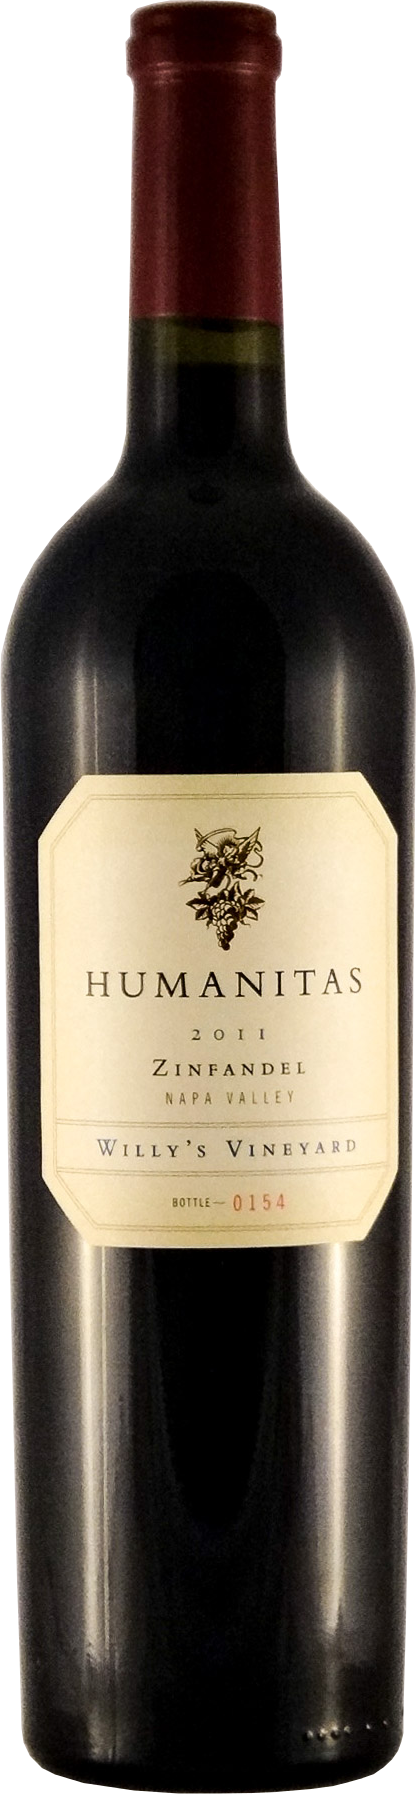 2011 Humanitas 'Good Earth' Zinfandel Willy's Vineyard - Qorkz